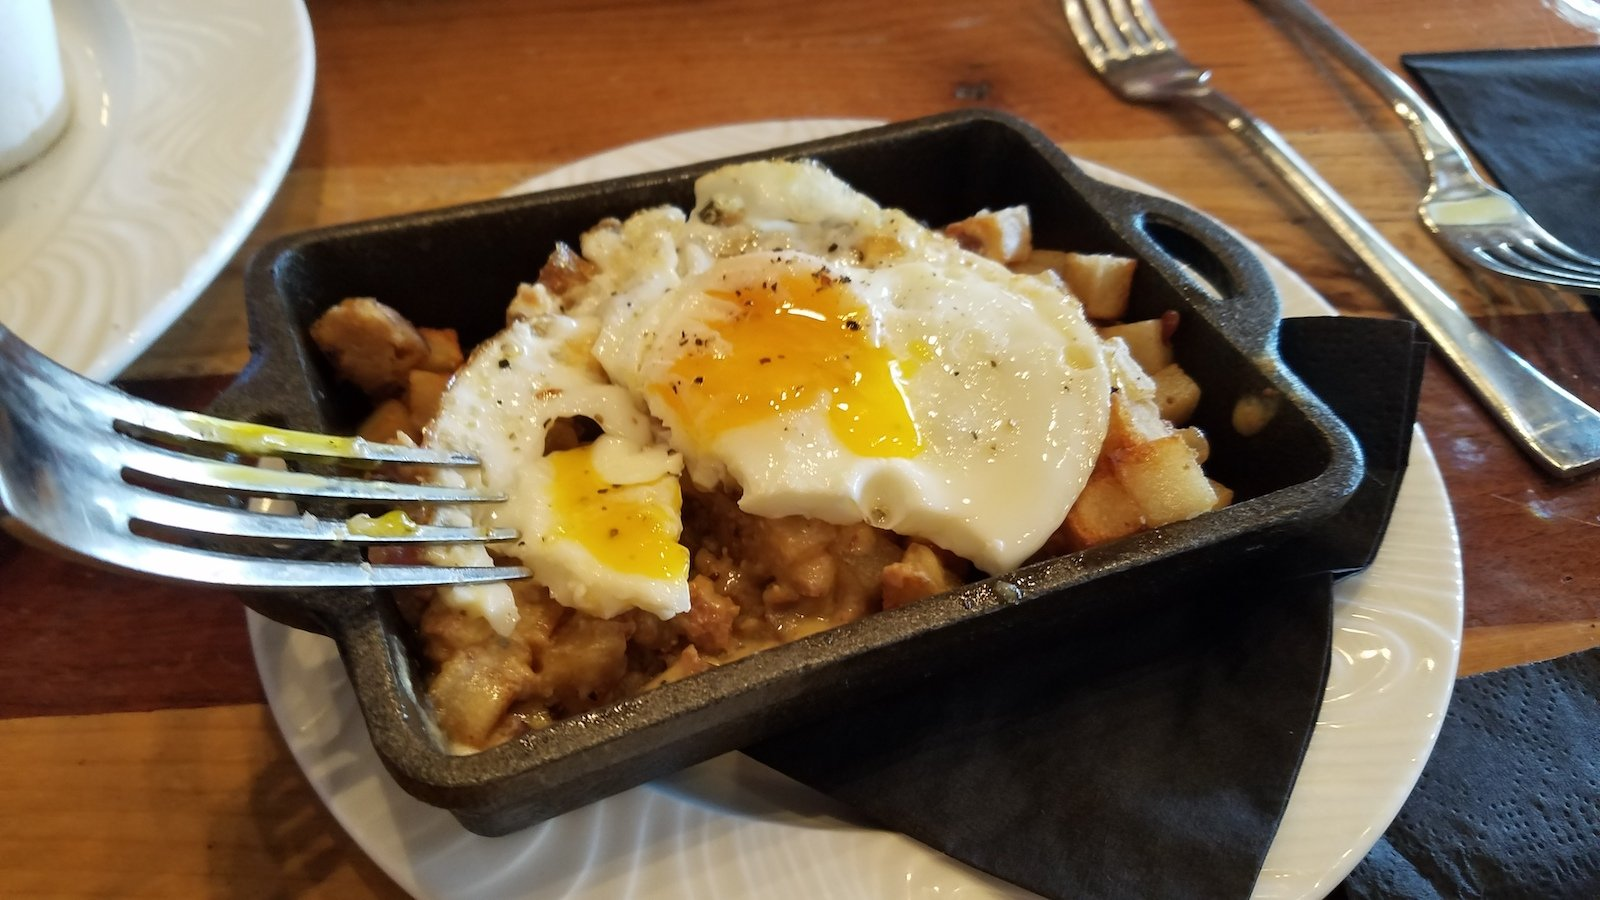 Soco Thornton Park Review - Meatloaf skillet hash